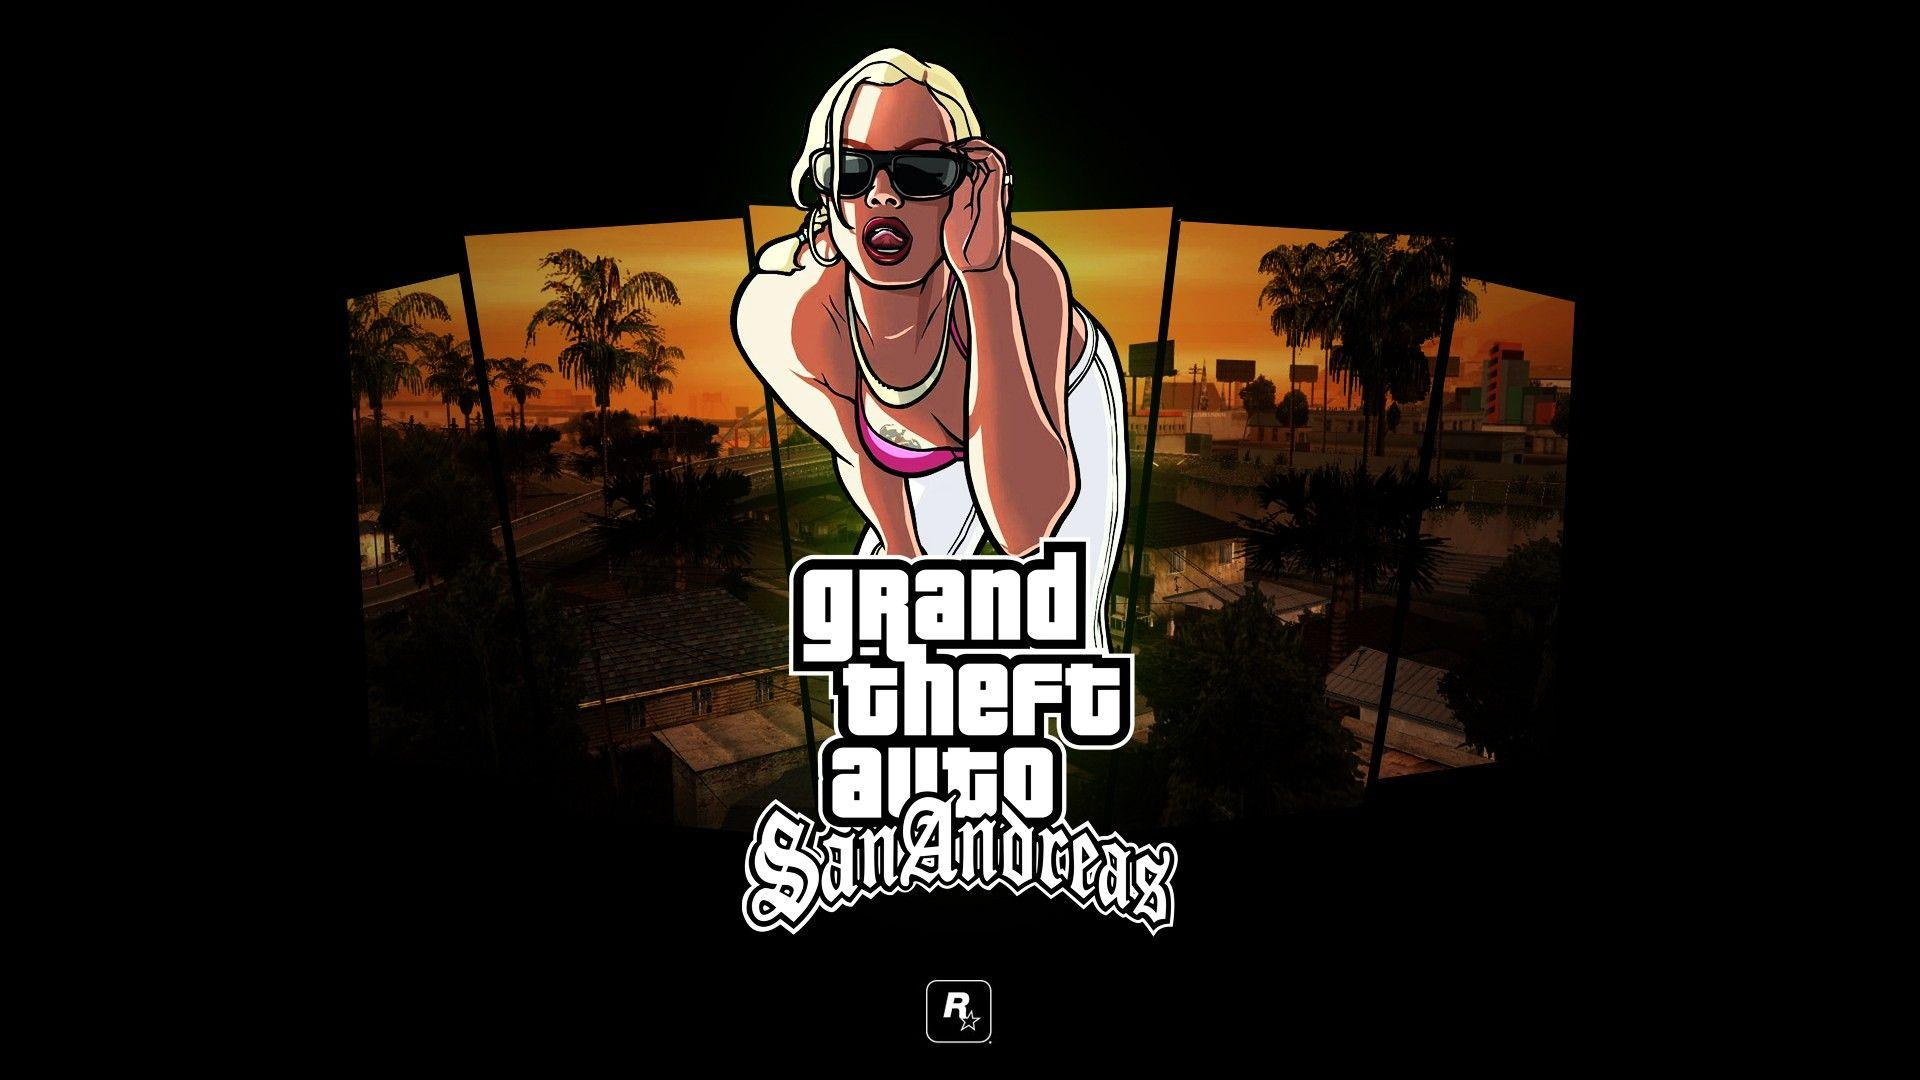 Gta San Andreas, HD Games, 4k Wallpapers, Image, Backgrounds